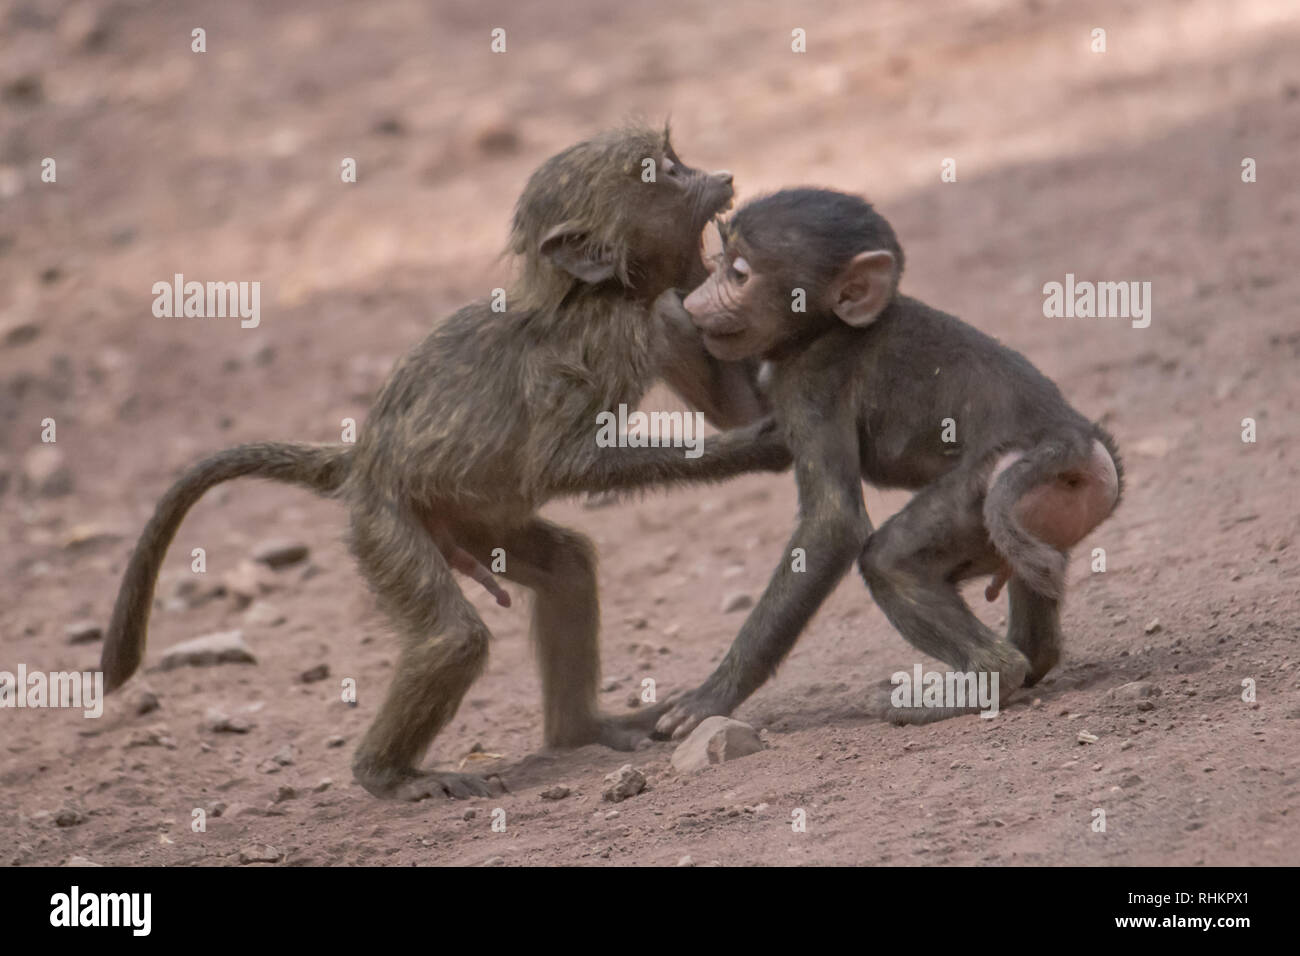 Two baboons playing - Stock Image